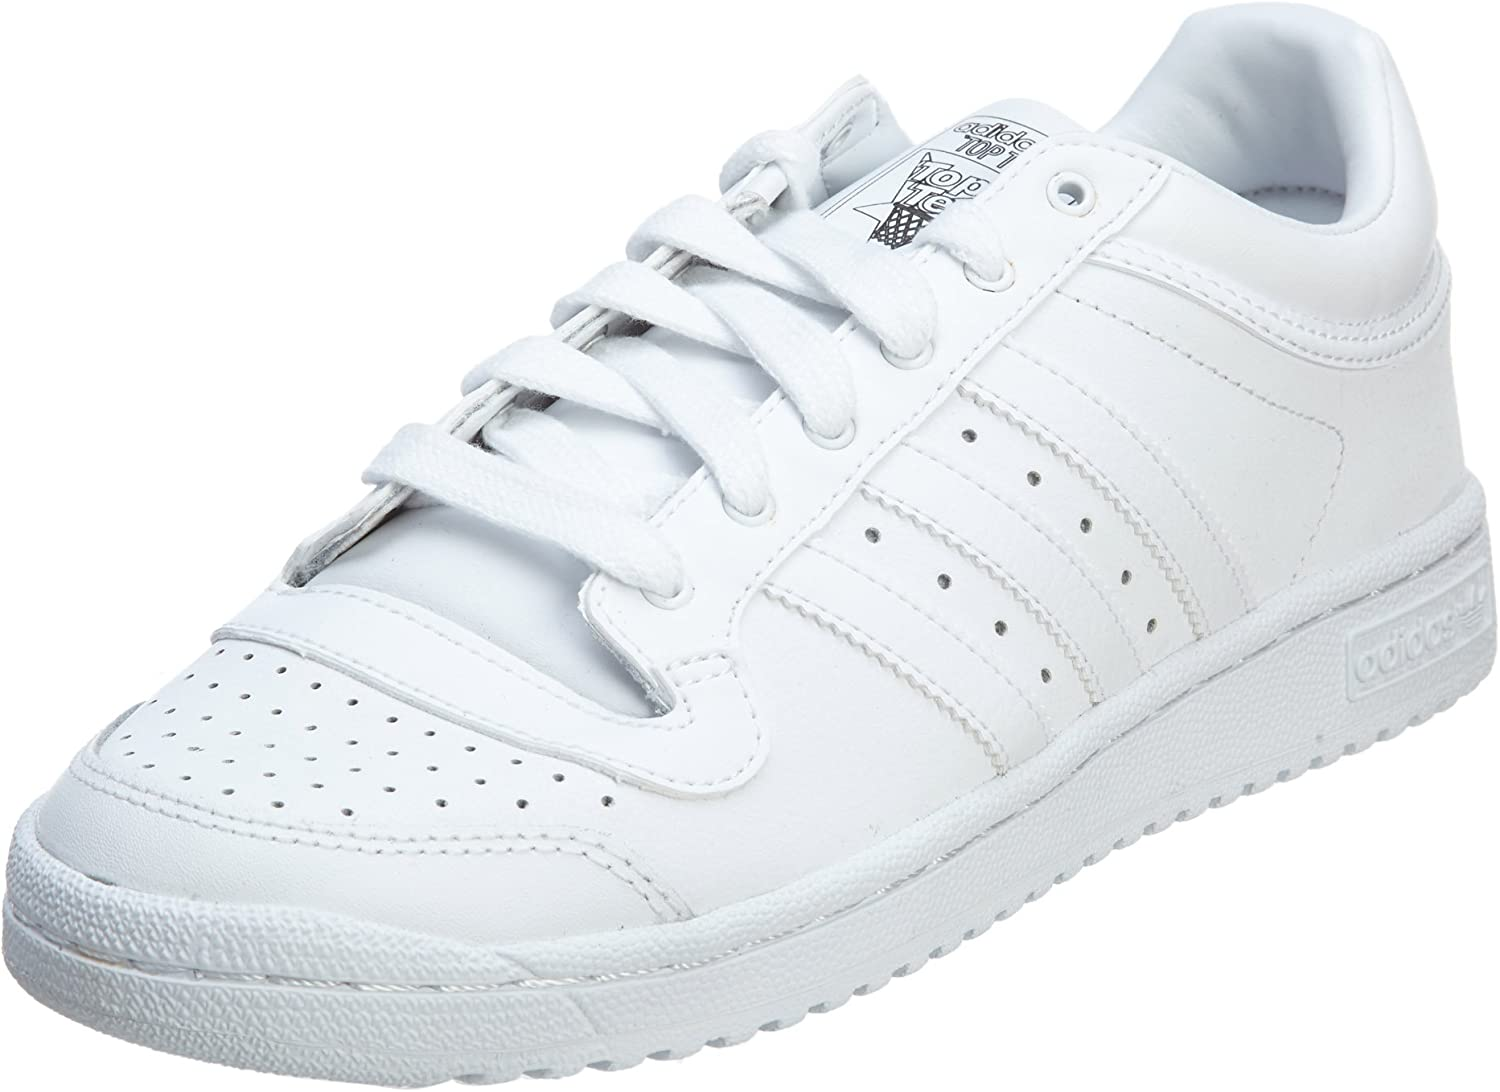 Verter Continuación Rebaño  adidas Originals mens TOP TEN LO-M Top Ten Lo White Size: 10.5:  Amazon.co.uk: Shoes & Bags